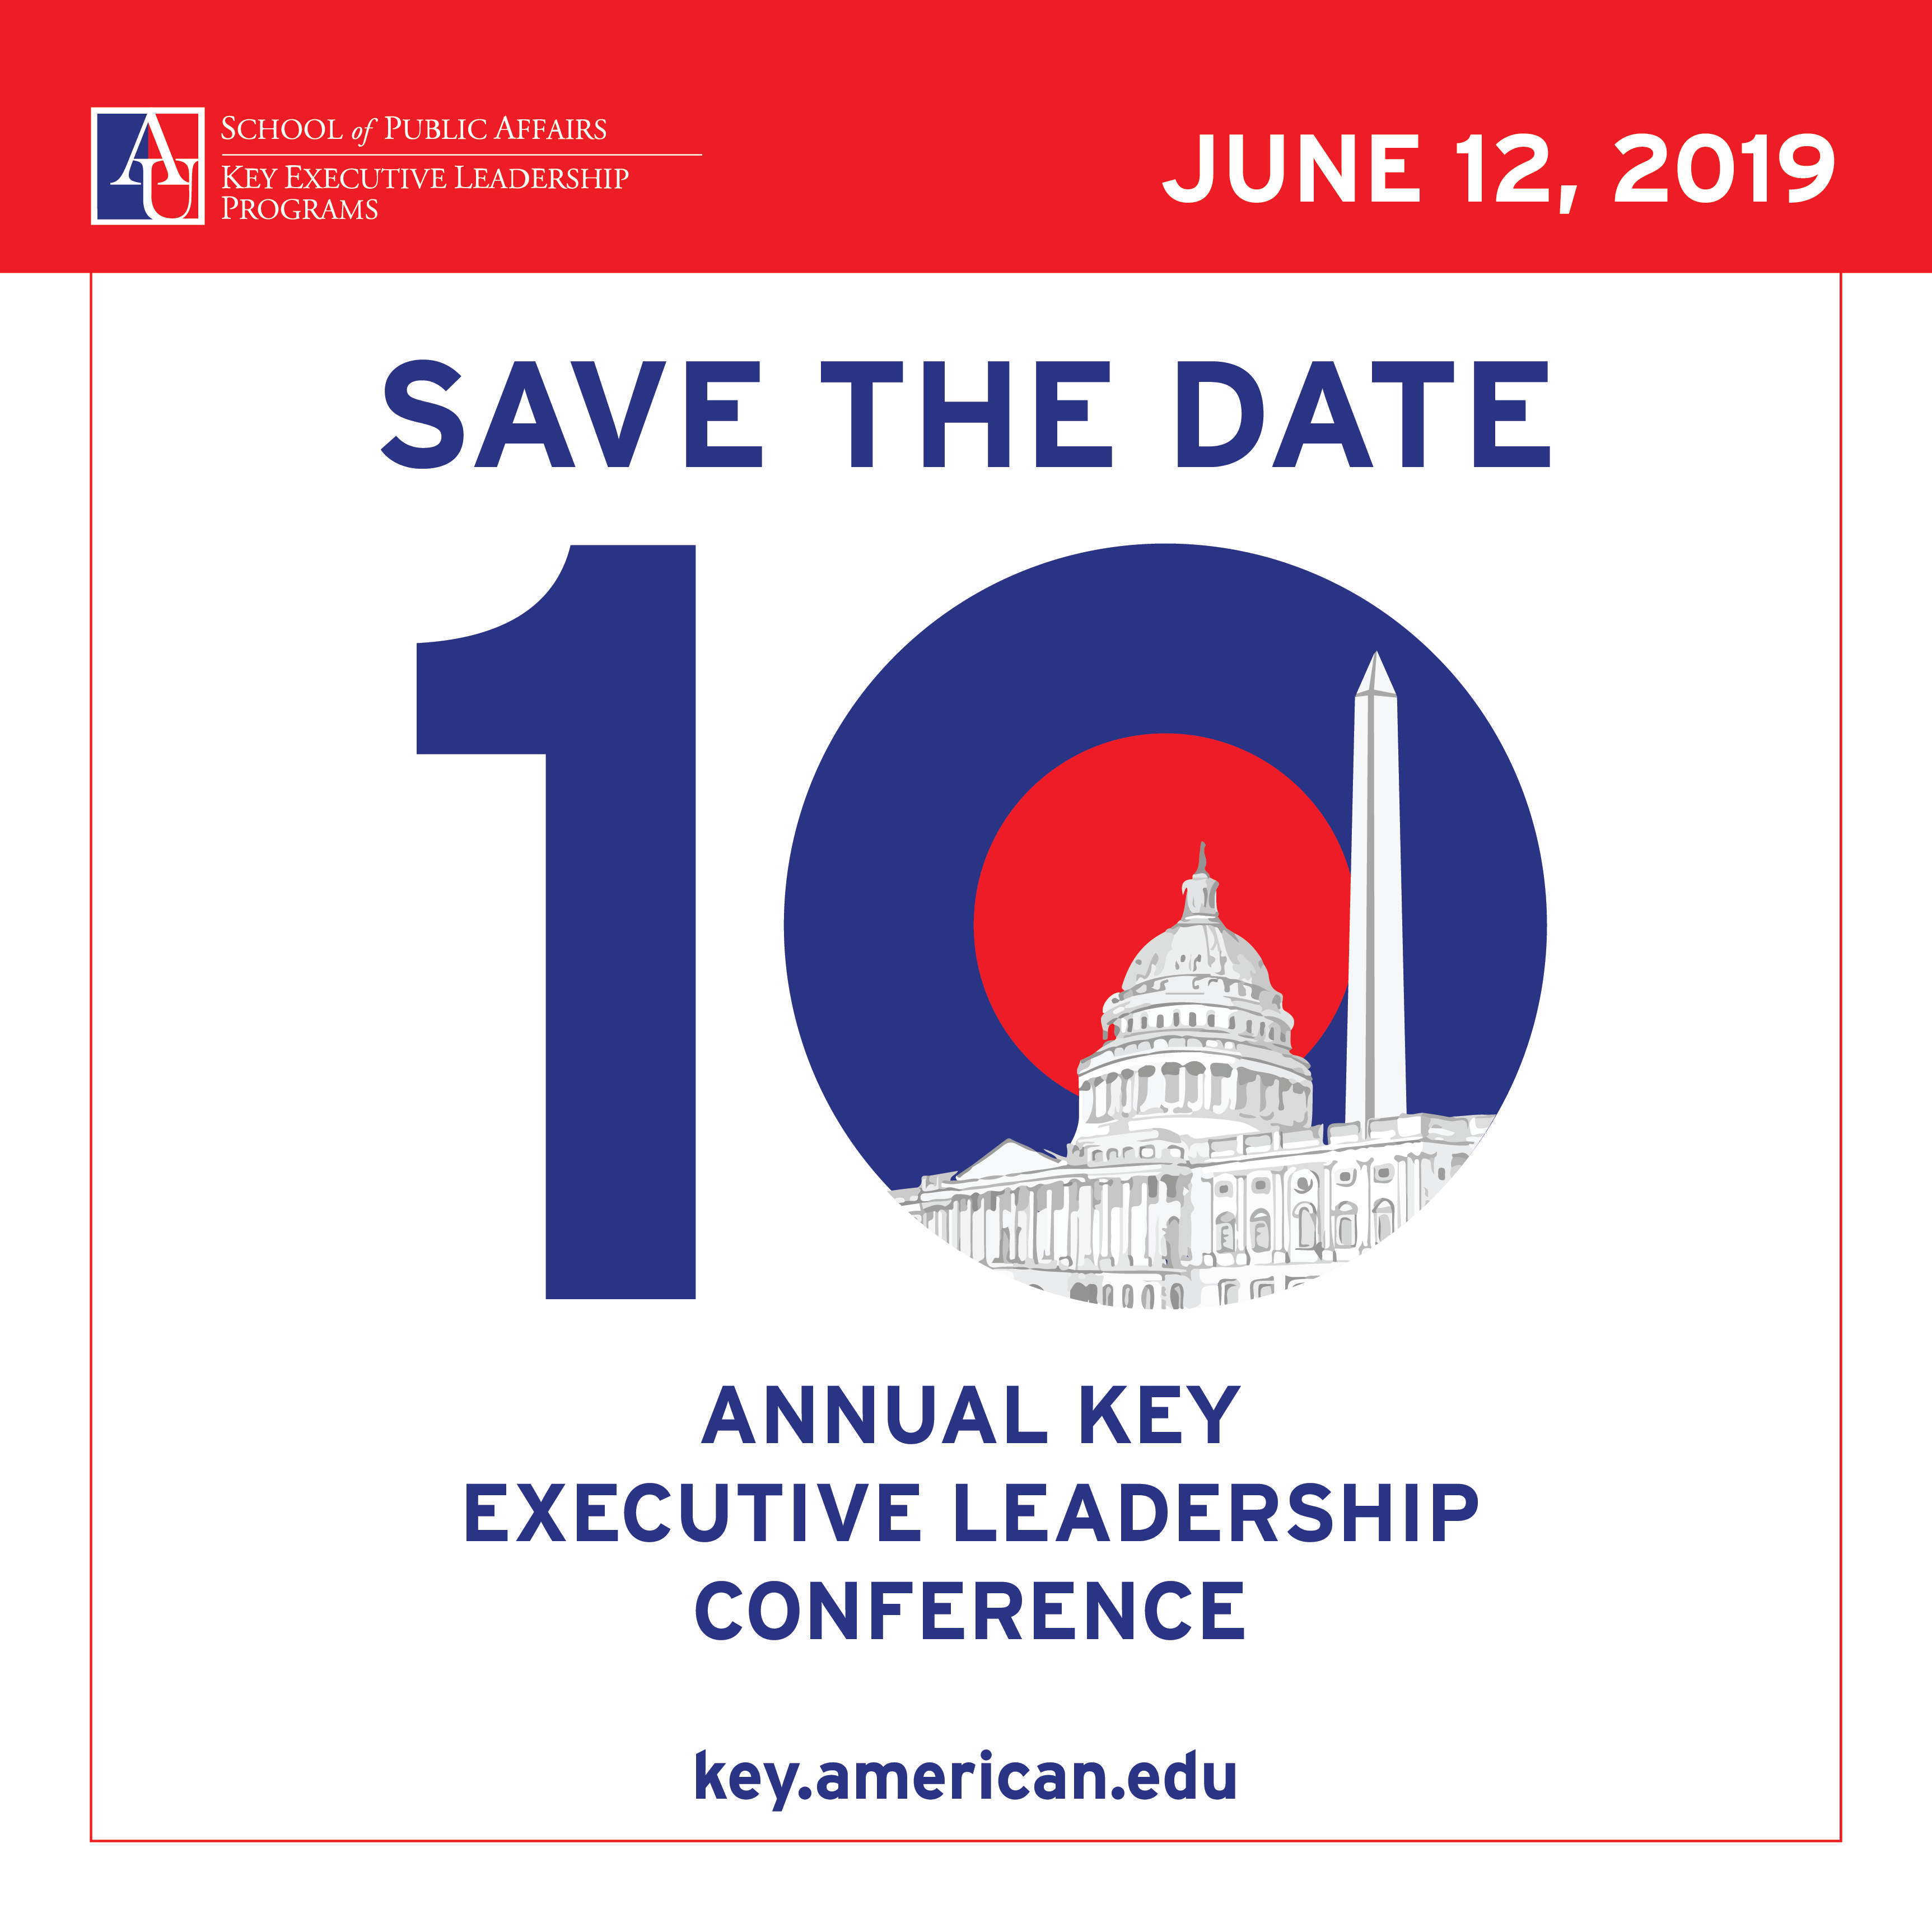 Save the Date for the 10th Annual Key Executive Leadership Conference on Wednesday June 12, 2019